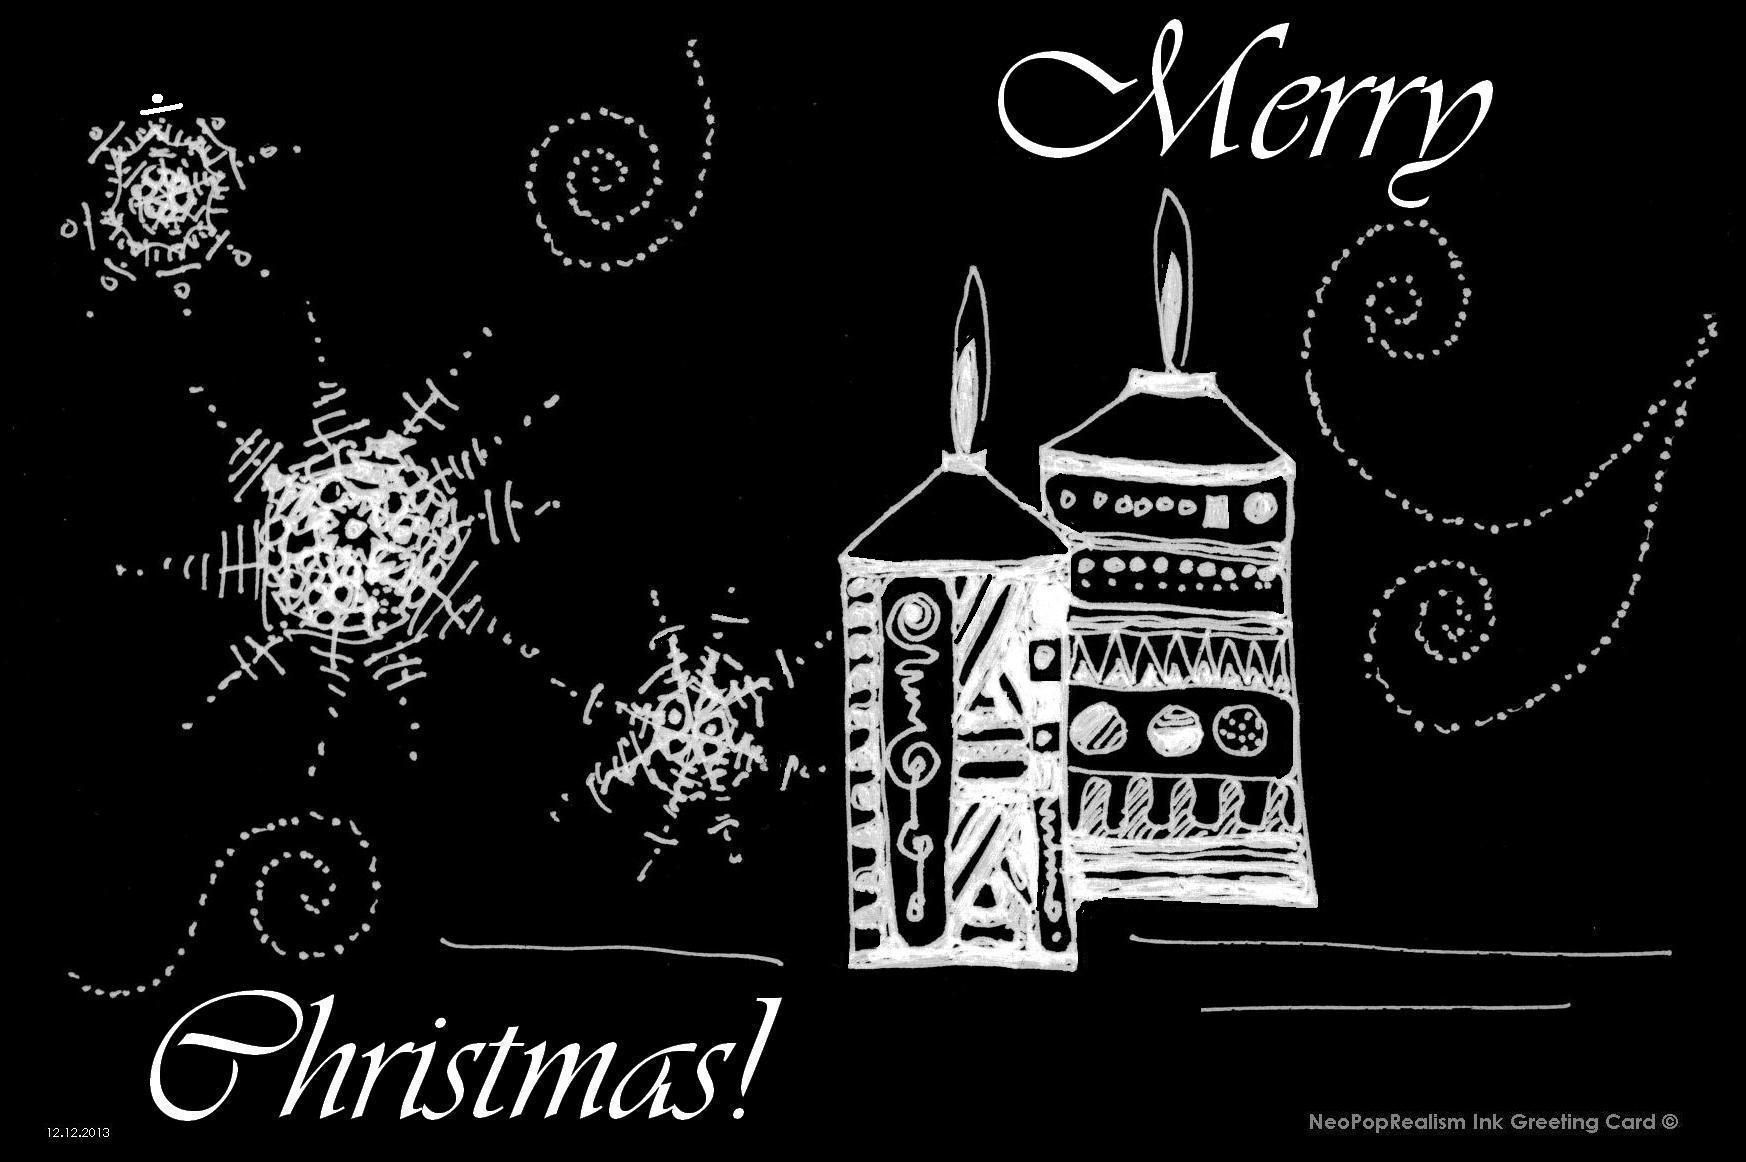 """Merry Christmas!"" candles NeoPopRealism ink & pen"